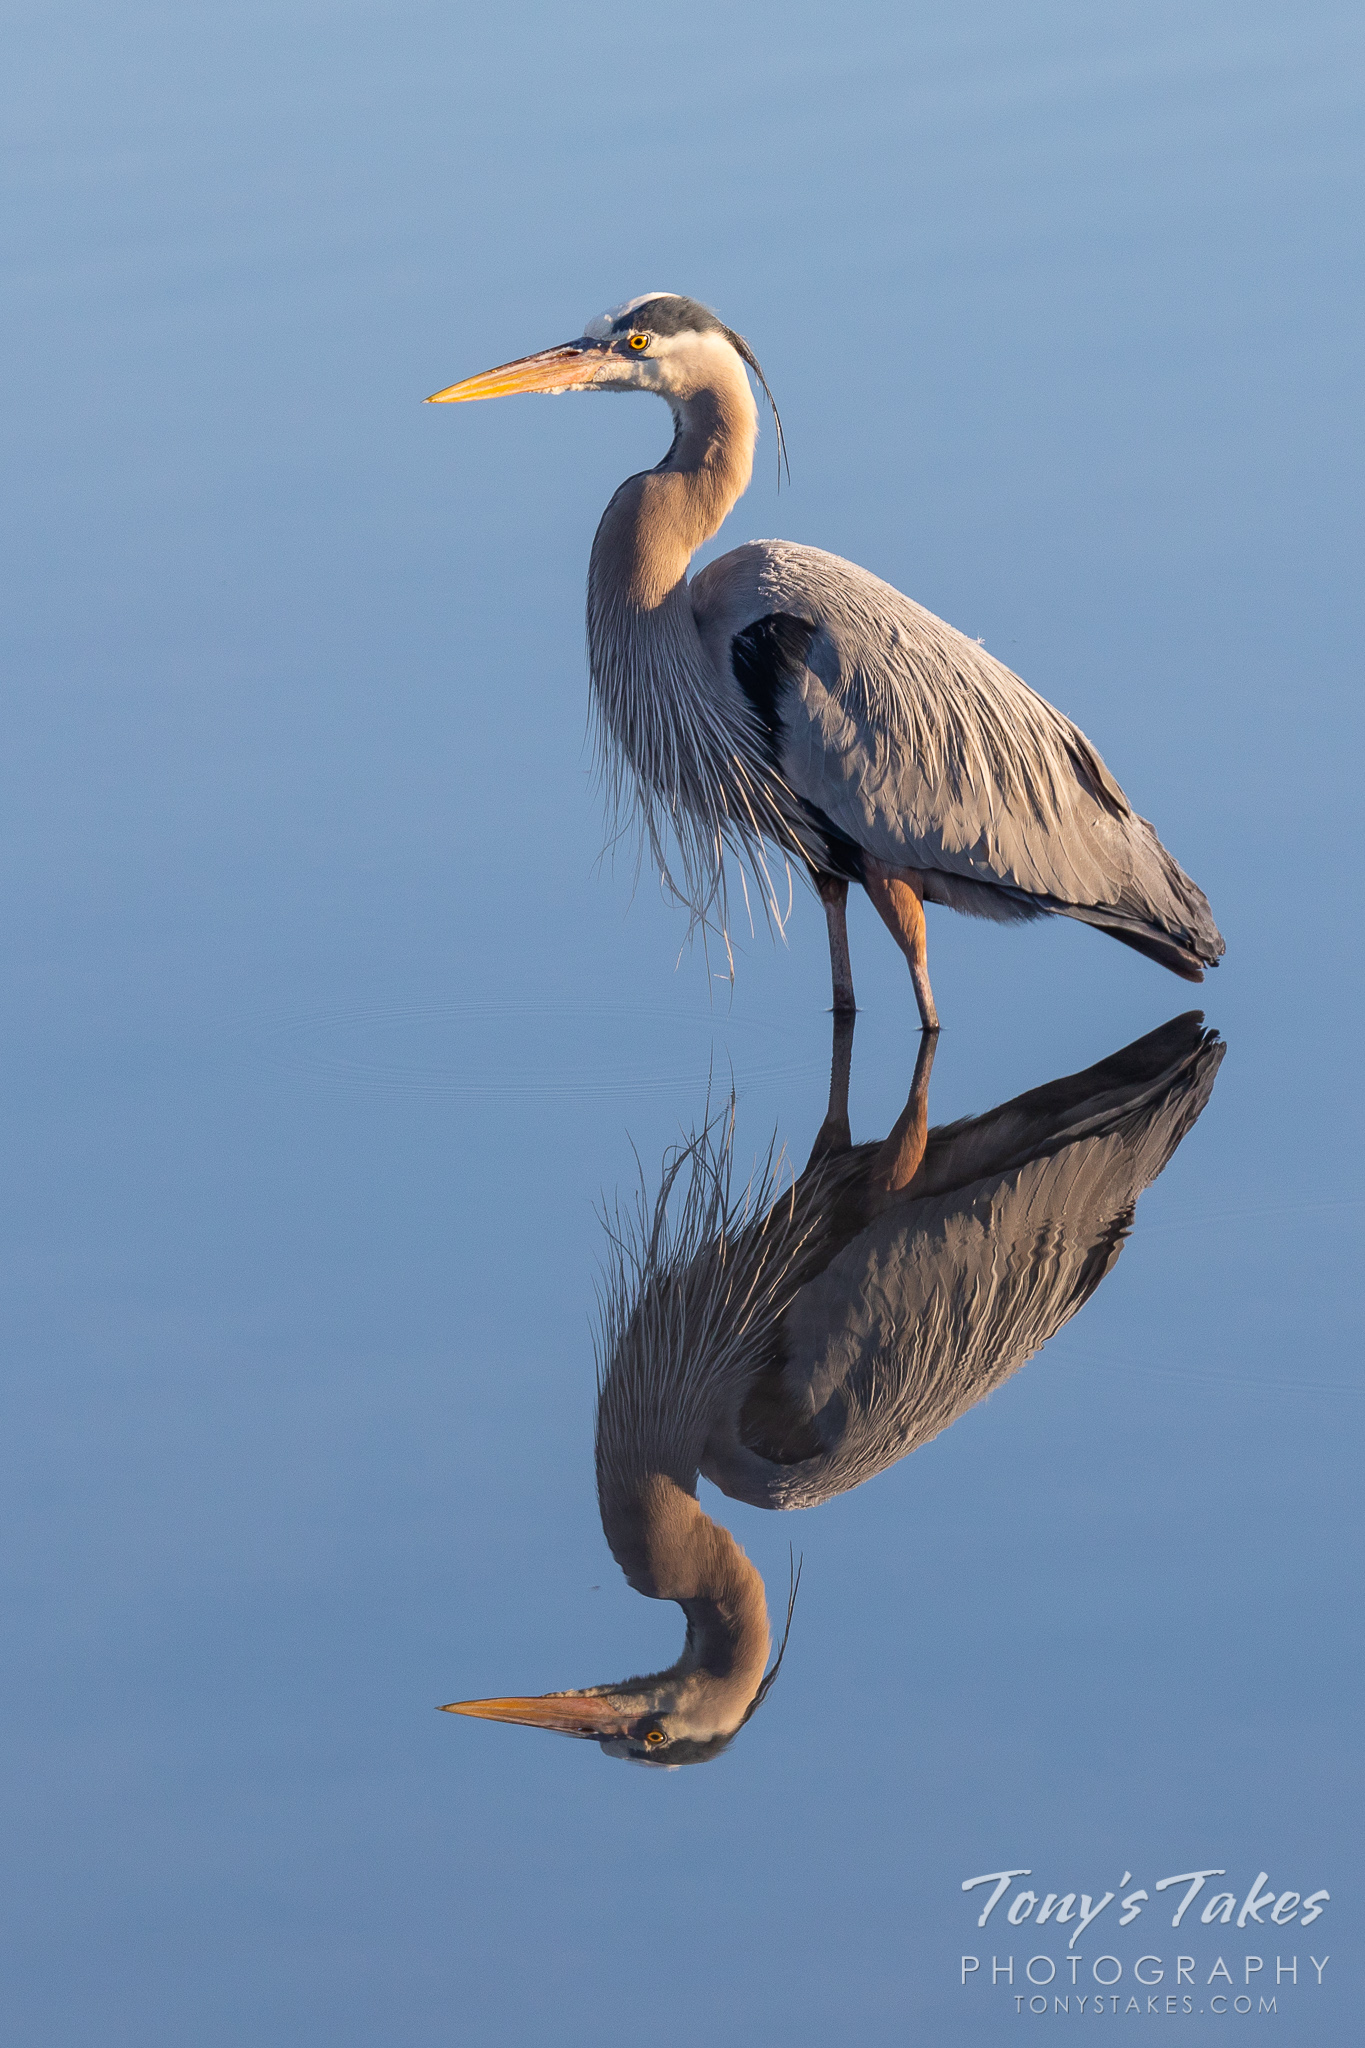 A great blue heron stands perfectly still in a pond allowing a mirror-like reflection on the waters of a pond. (© Tony's Takes)